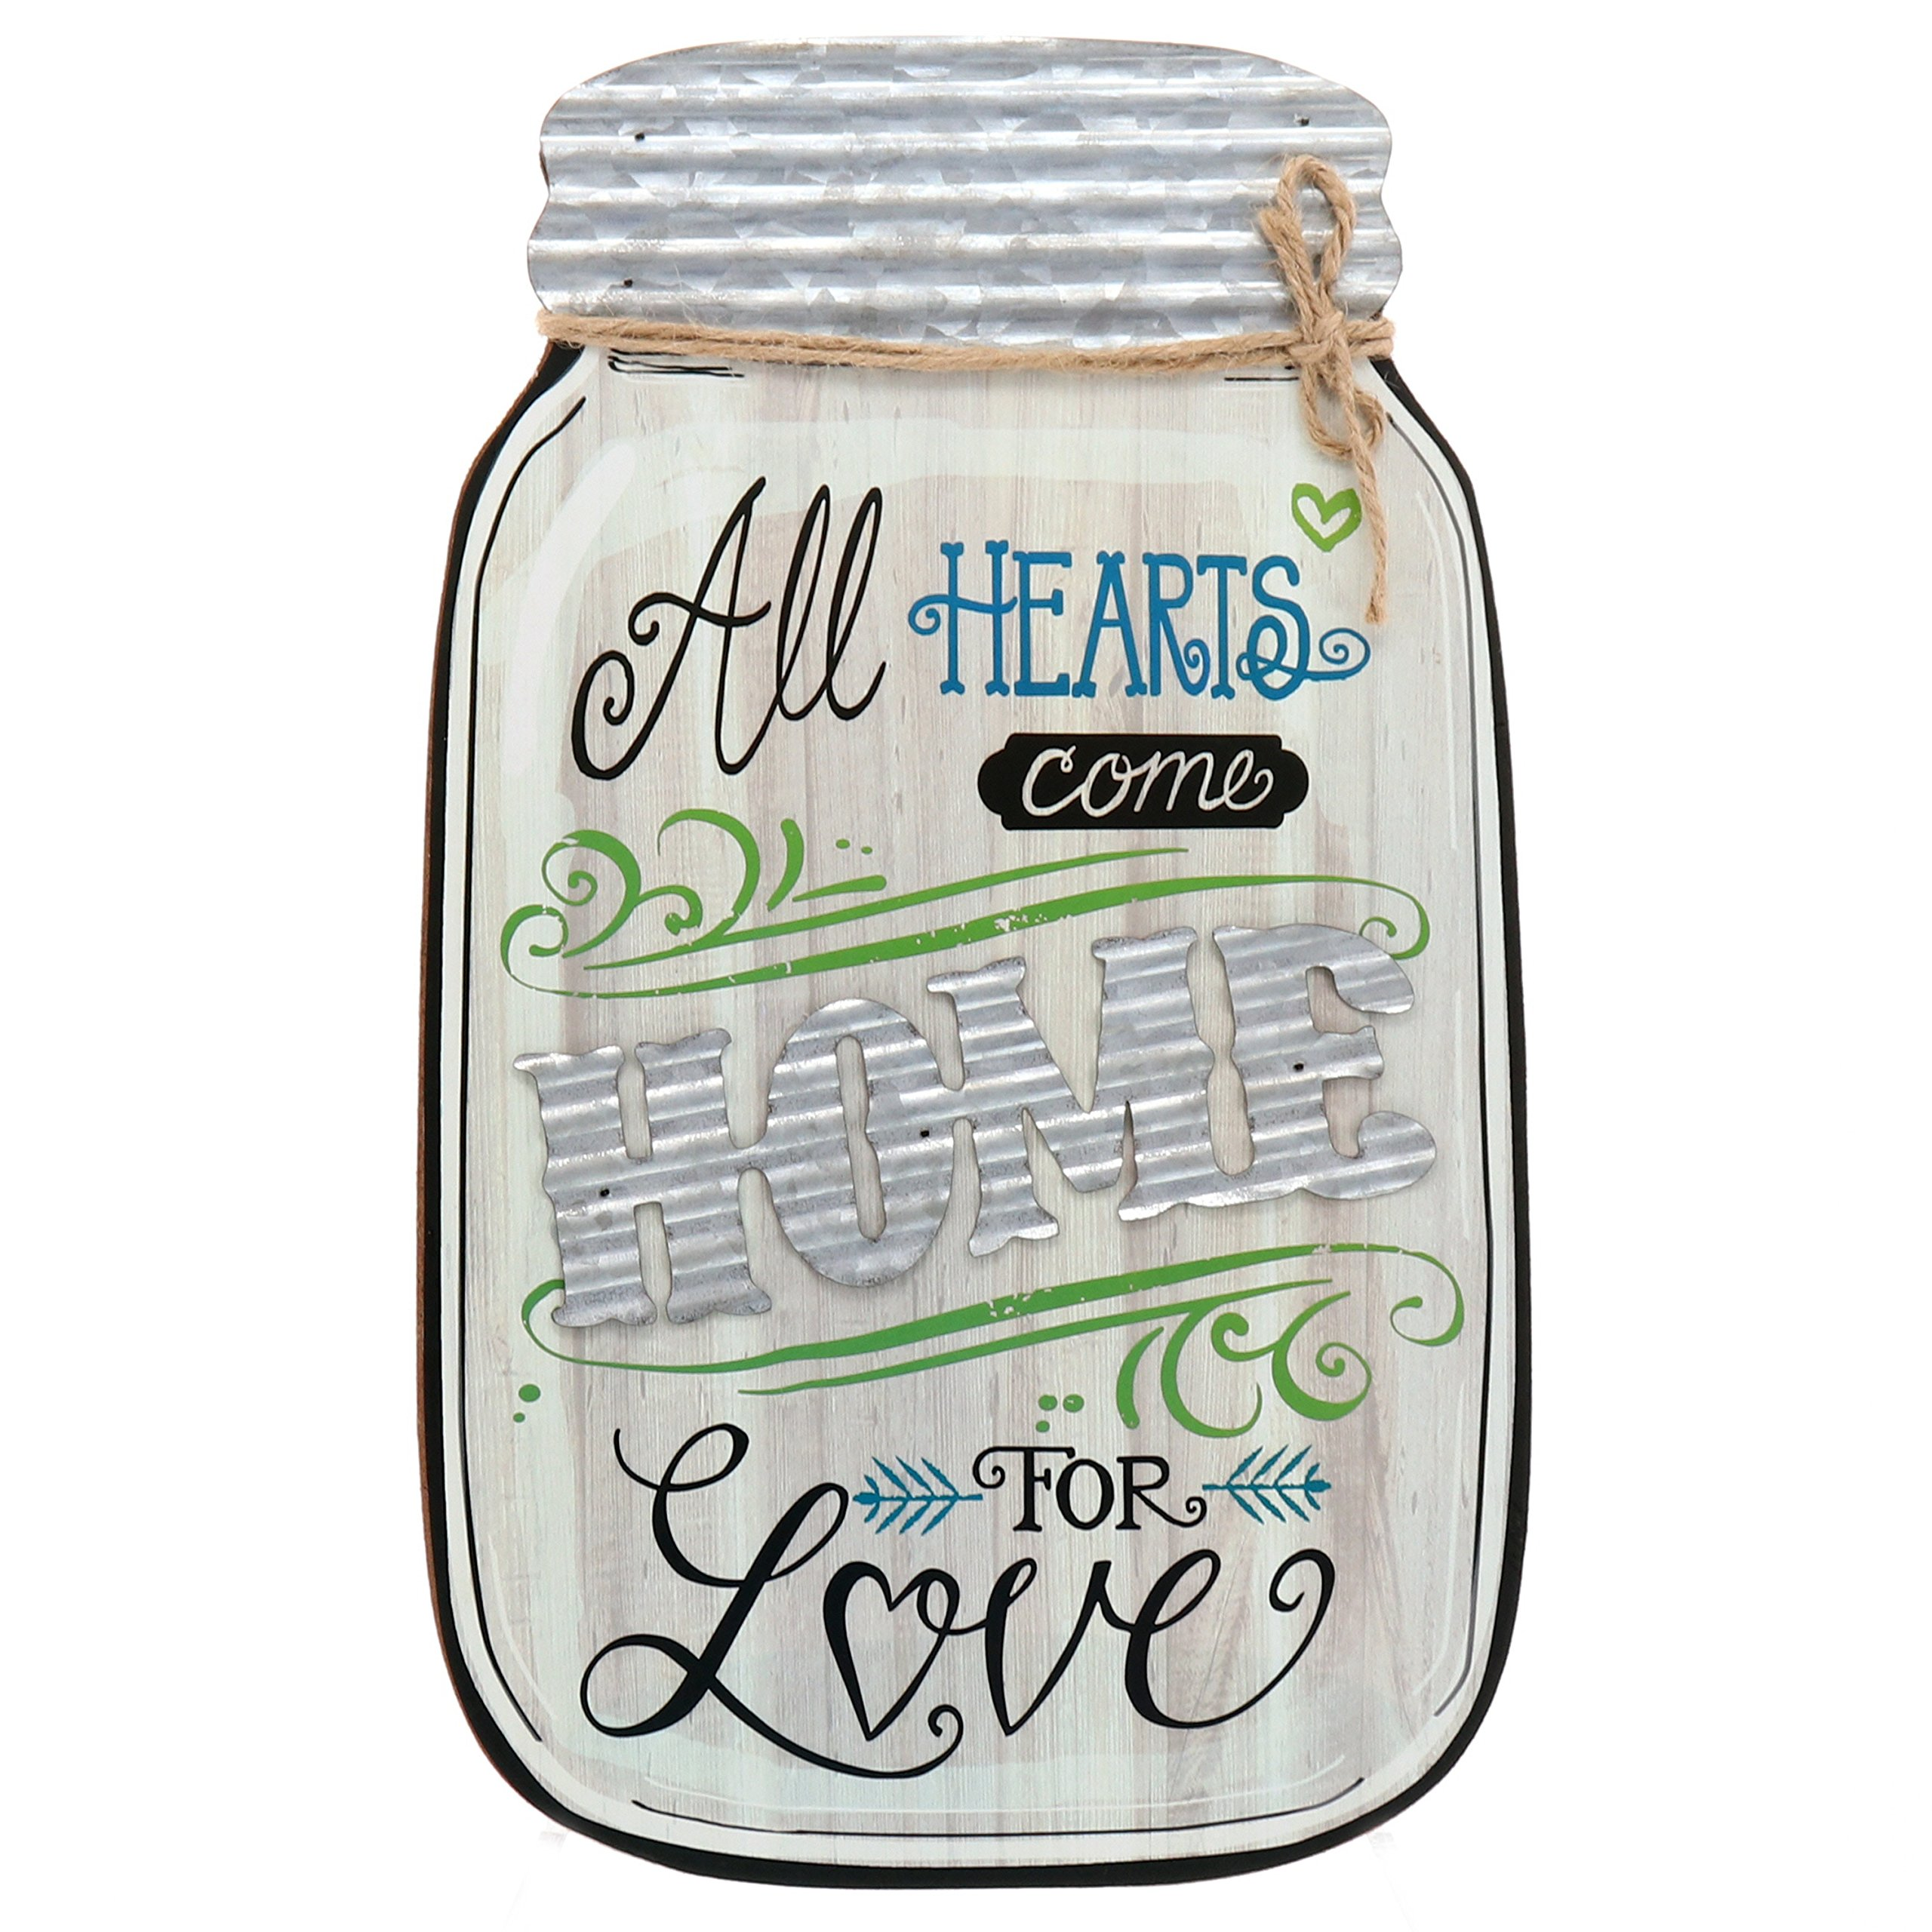 Barnyard Designs Rustic All Hearts Come Home For Love Mason Jar Decorative Wood and Metal Wall Sign Vintage Country Decor 14''x9''